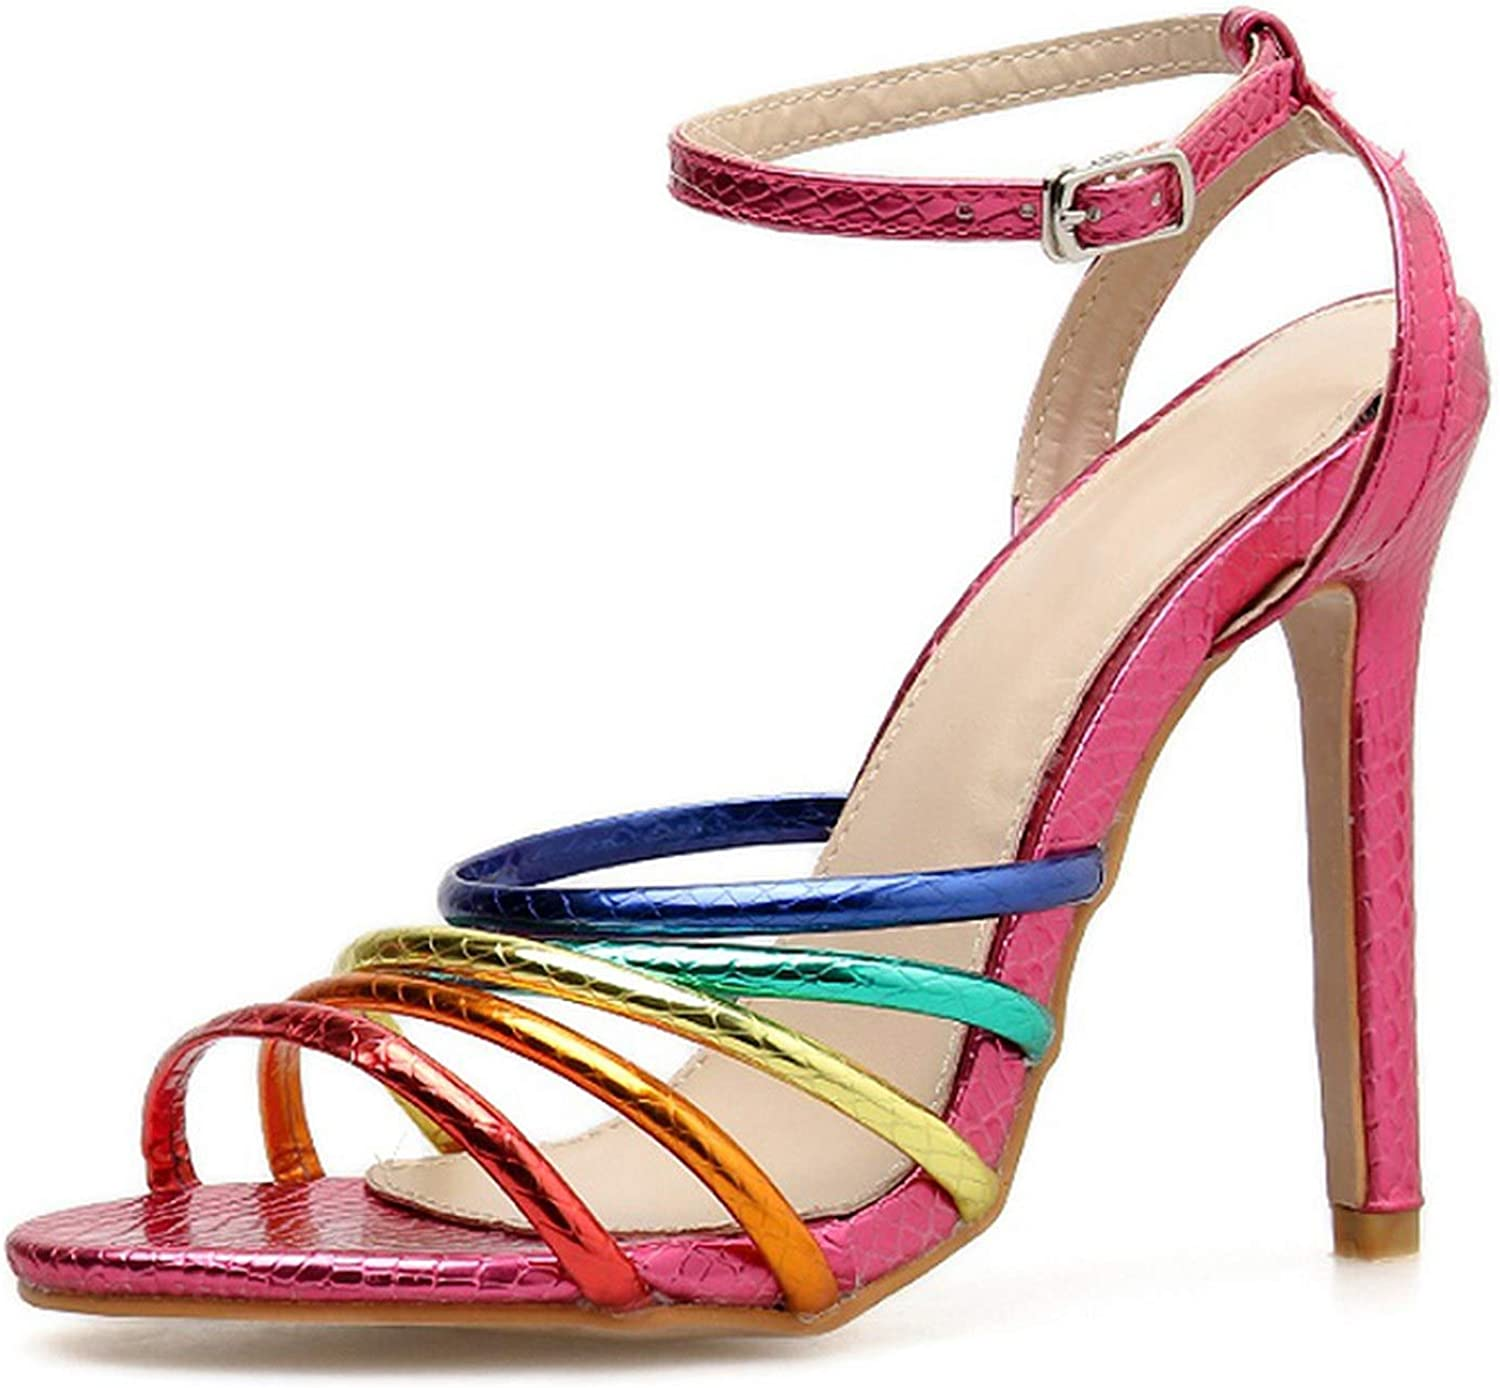 Summer Sandals Gladiator Miexd color Sexy High Thin Heels shoes Woman Casual Buckle Sandals Lady shoes